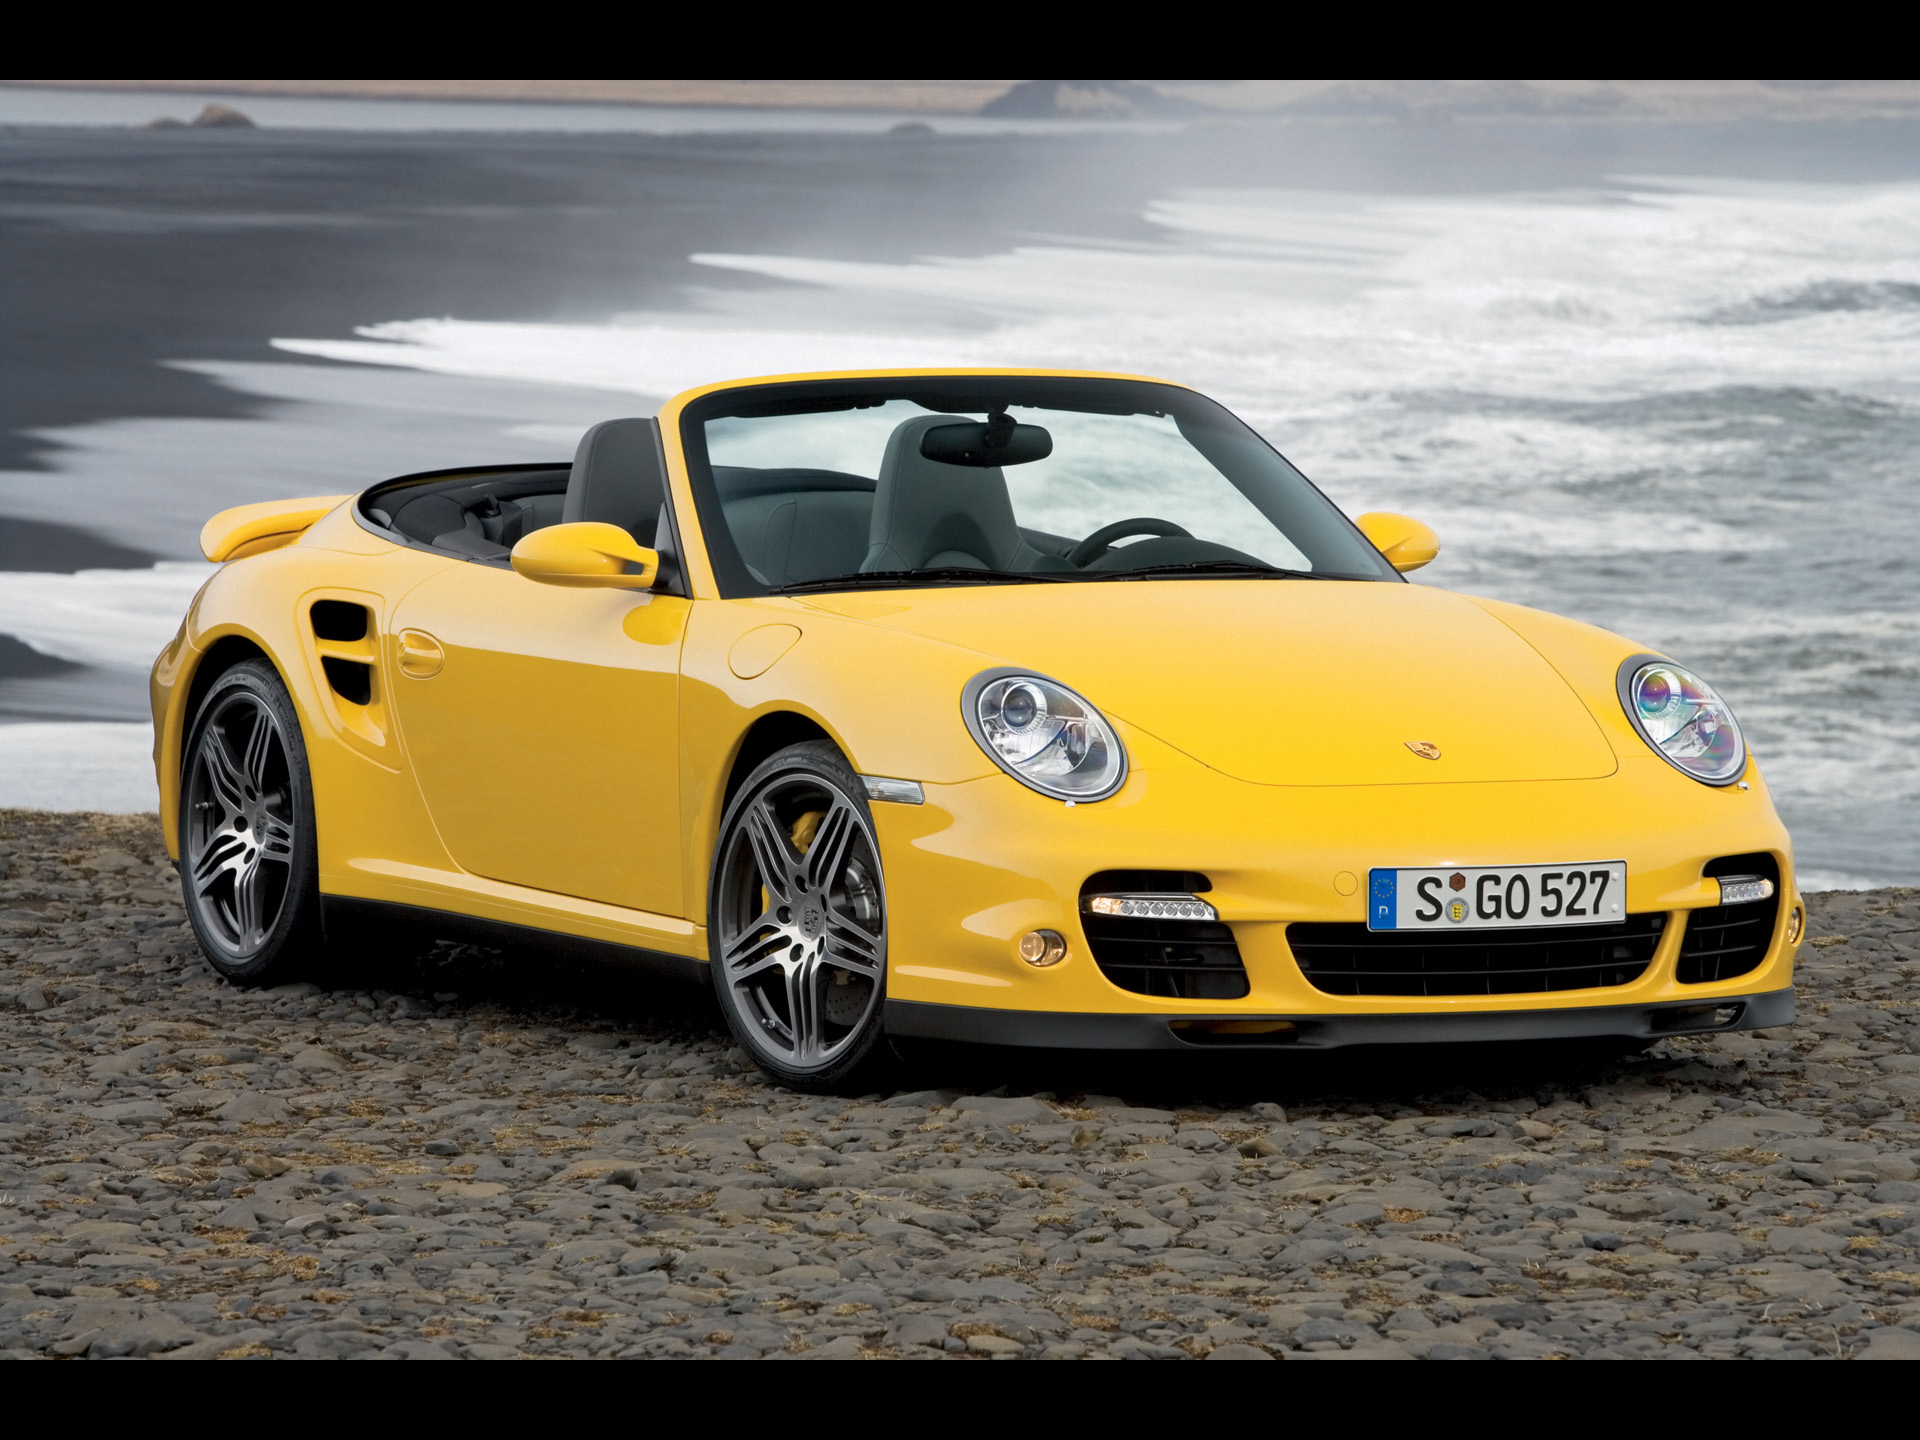 porsche 911 cabrio 997 911 carrera s cabriolet 355 hp. Black Bedroom Furniture Sets. Home Design Ideas